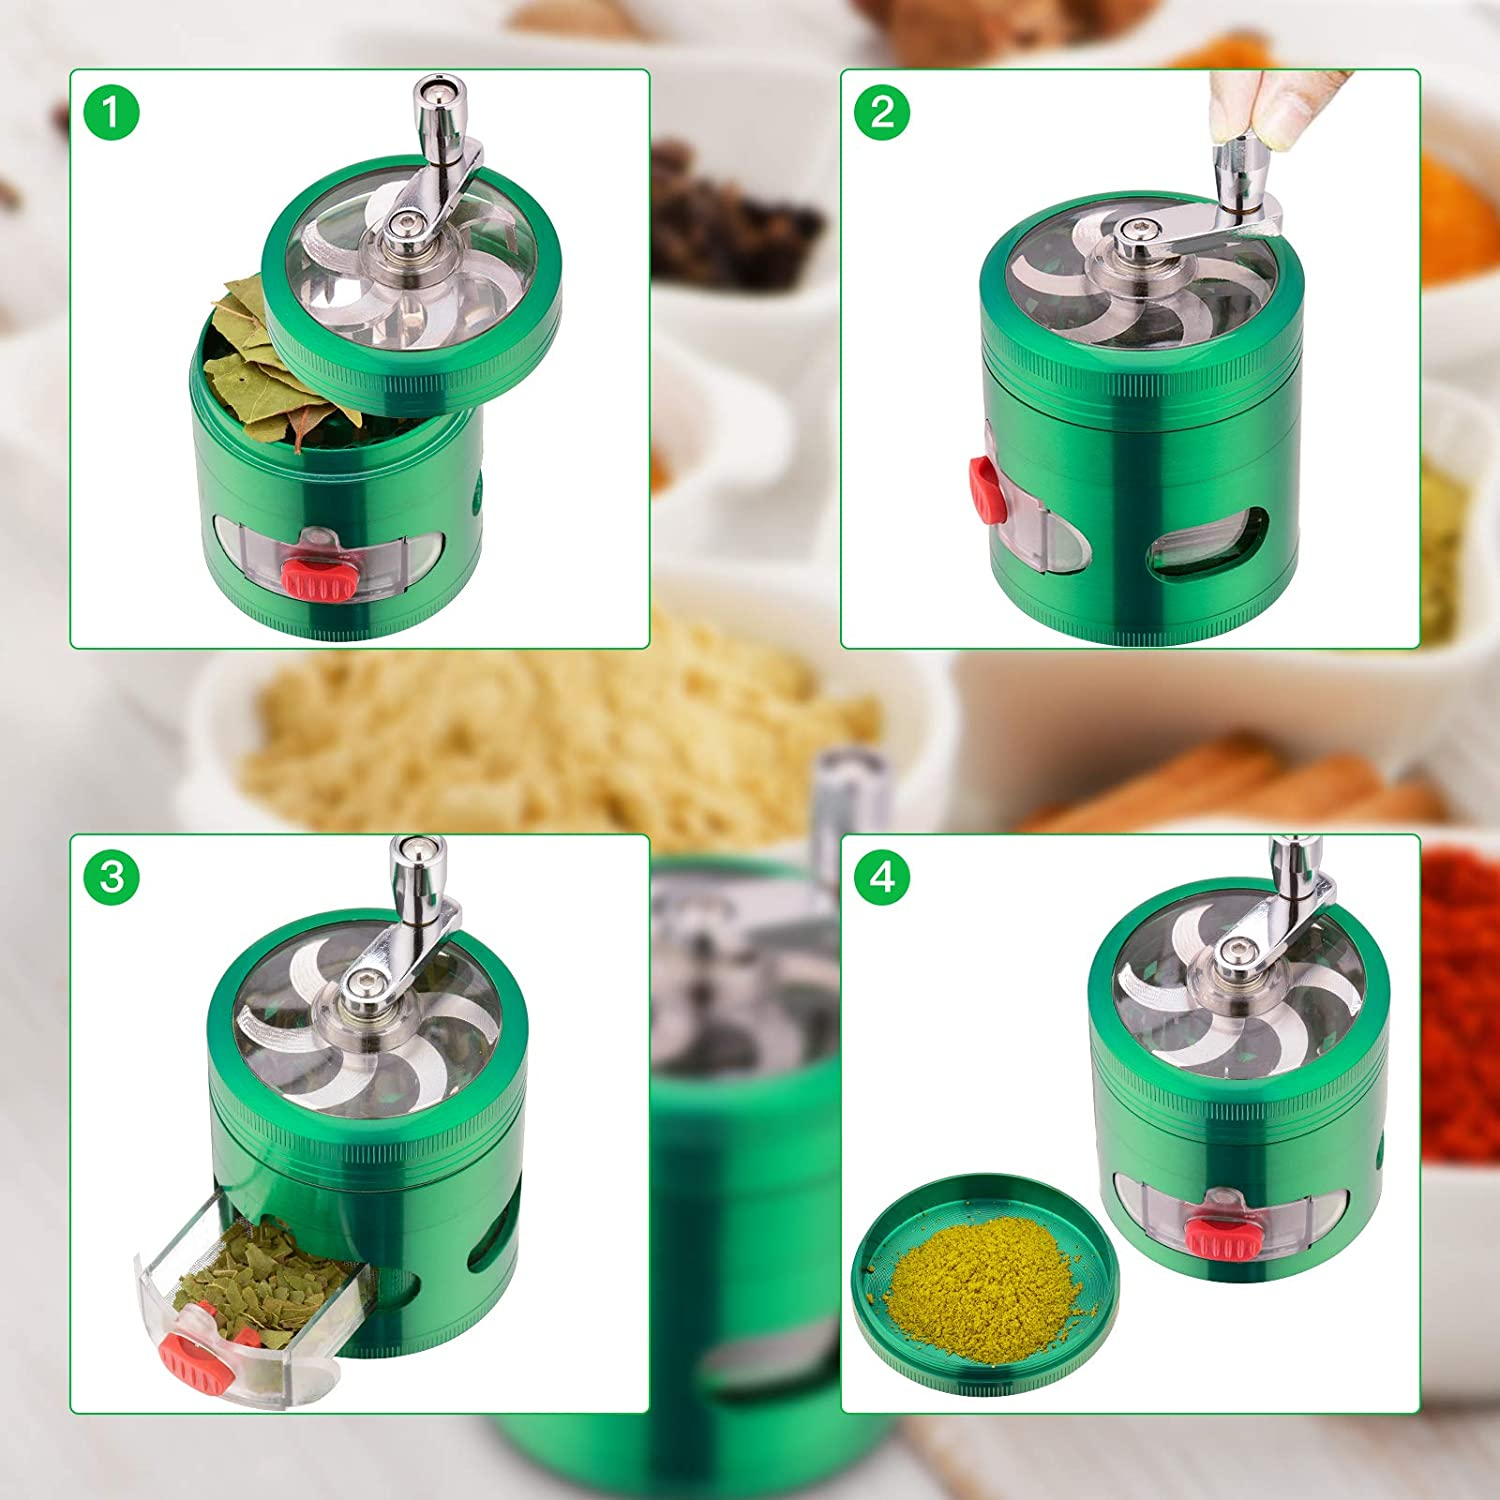 3 Separation Chambers Contain Drawer and Powder Separator Premium Hand Cranked Design Higher Volume Herb Grinder